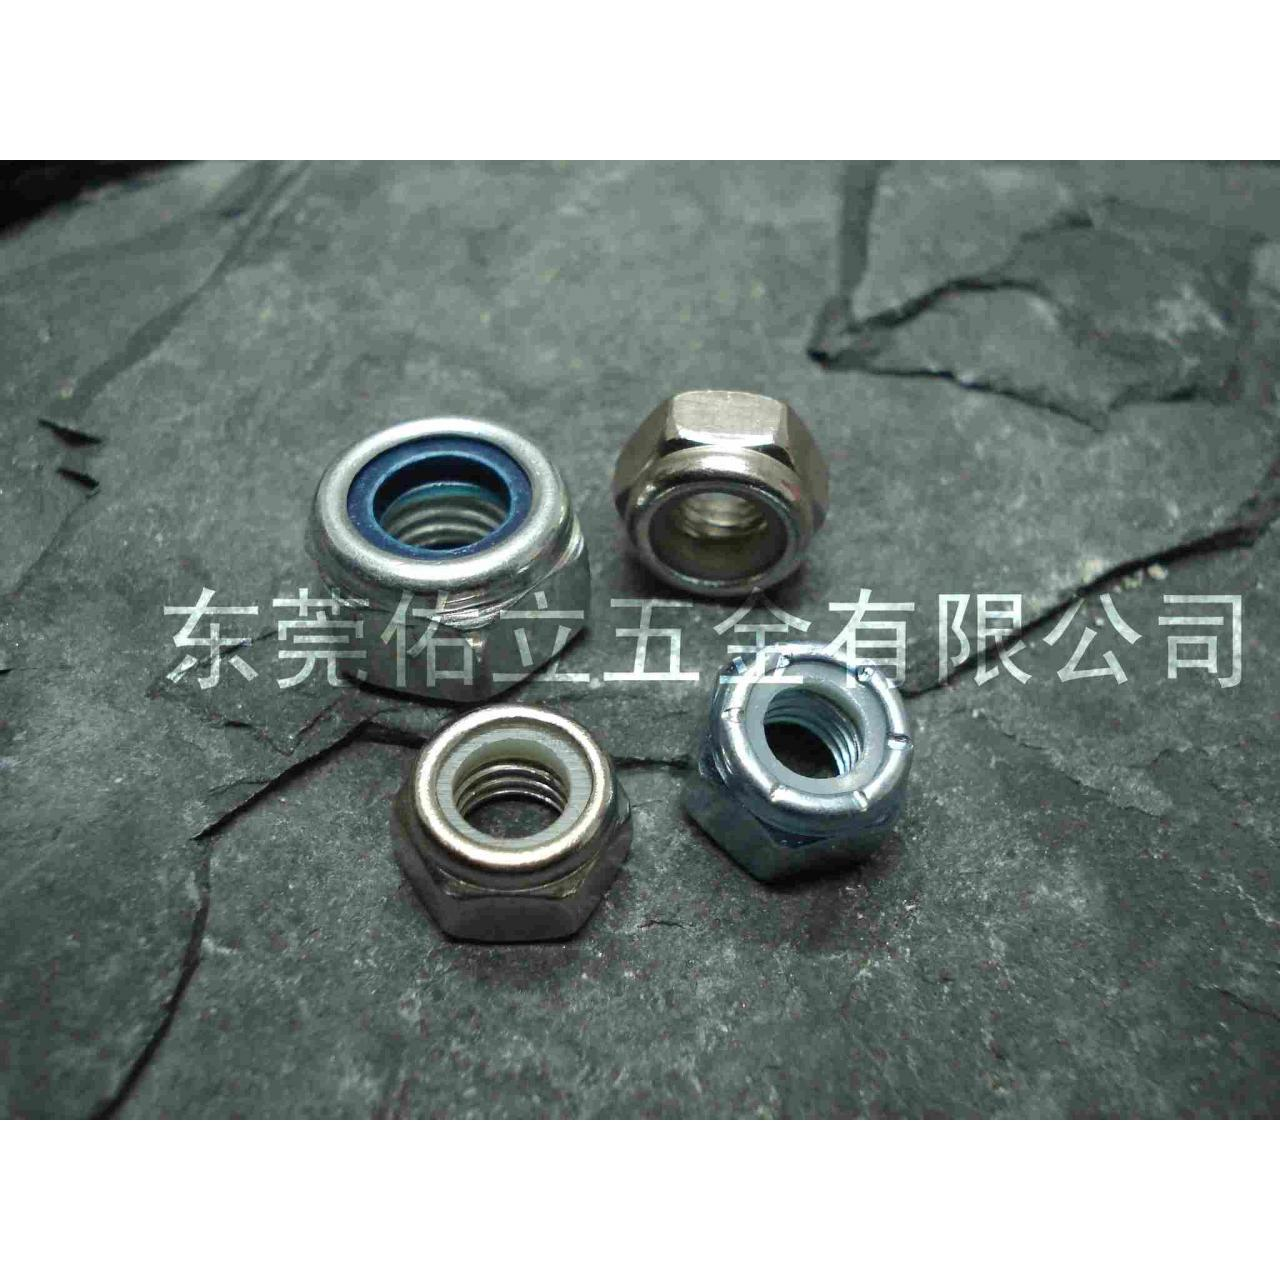 Buy cheap Anti-loose nut nylon lock from wholesalers